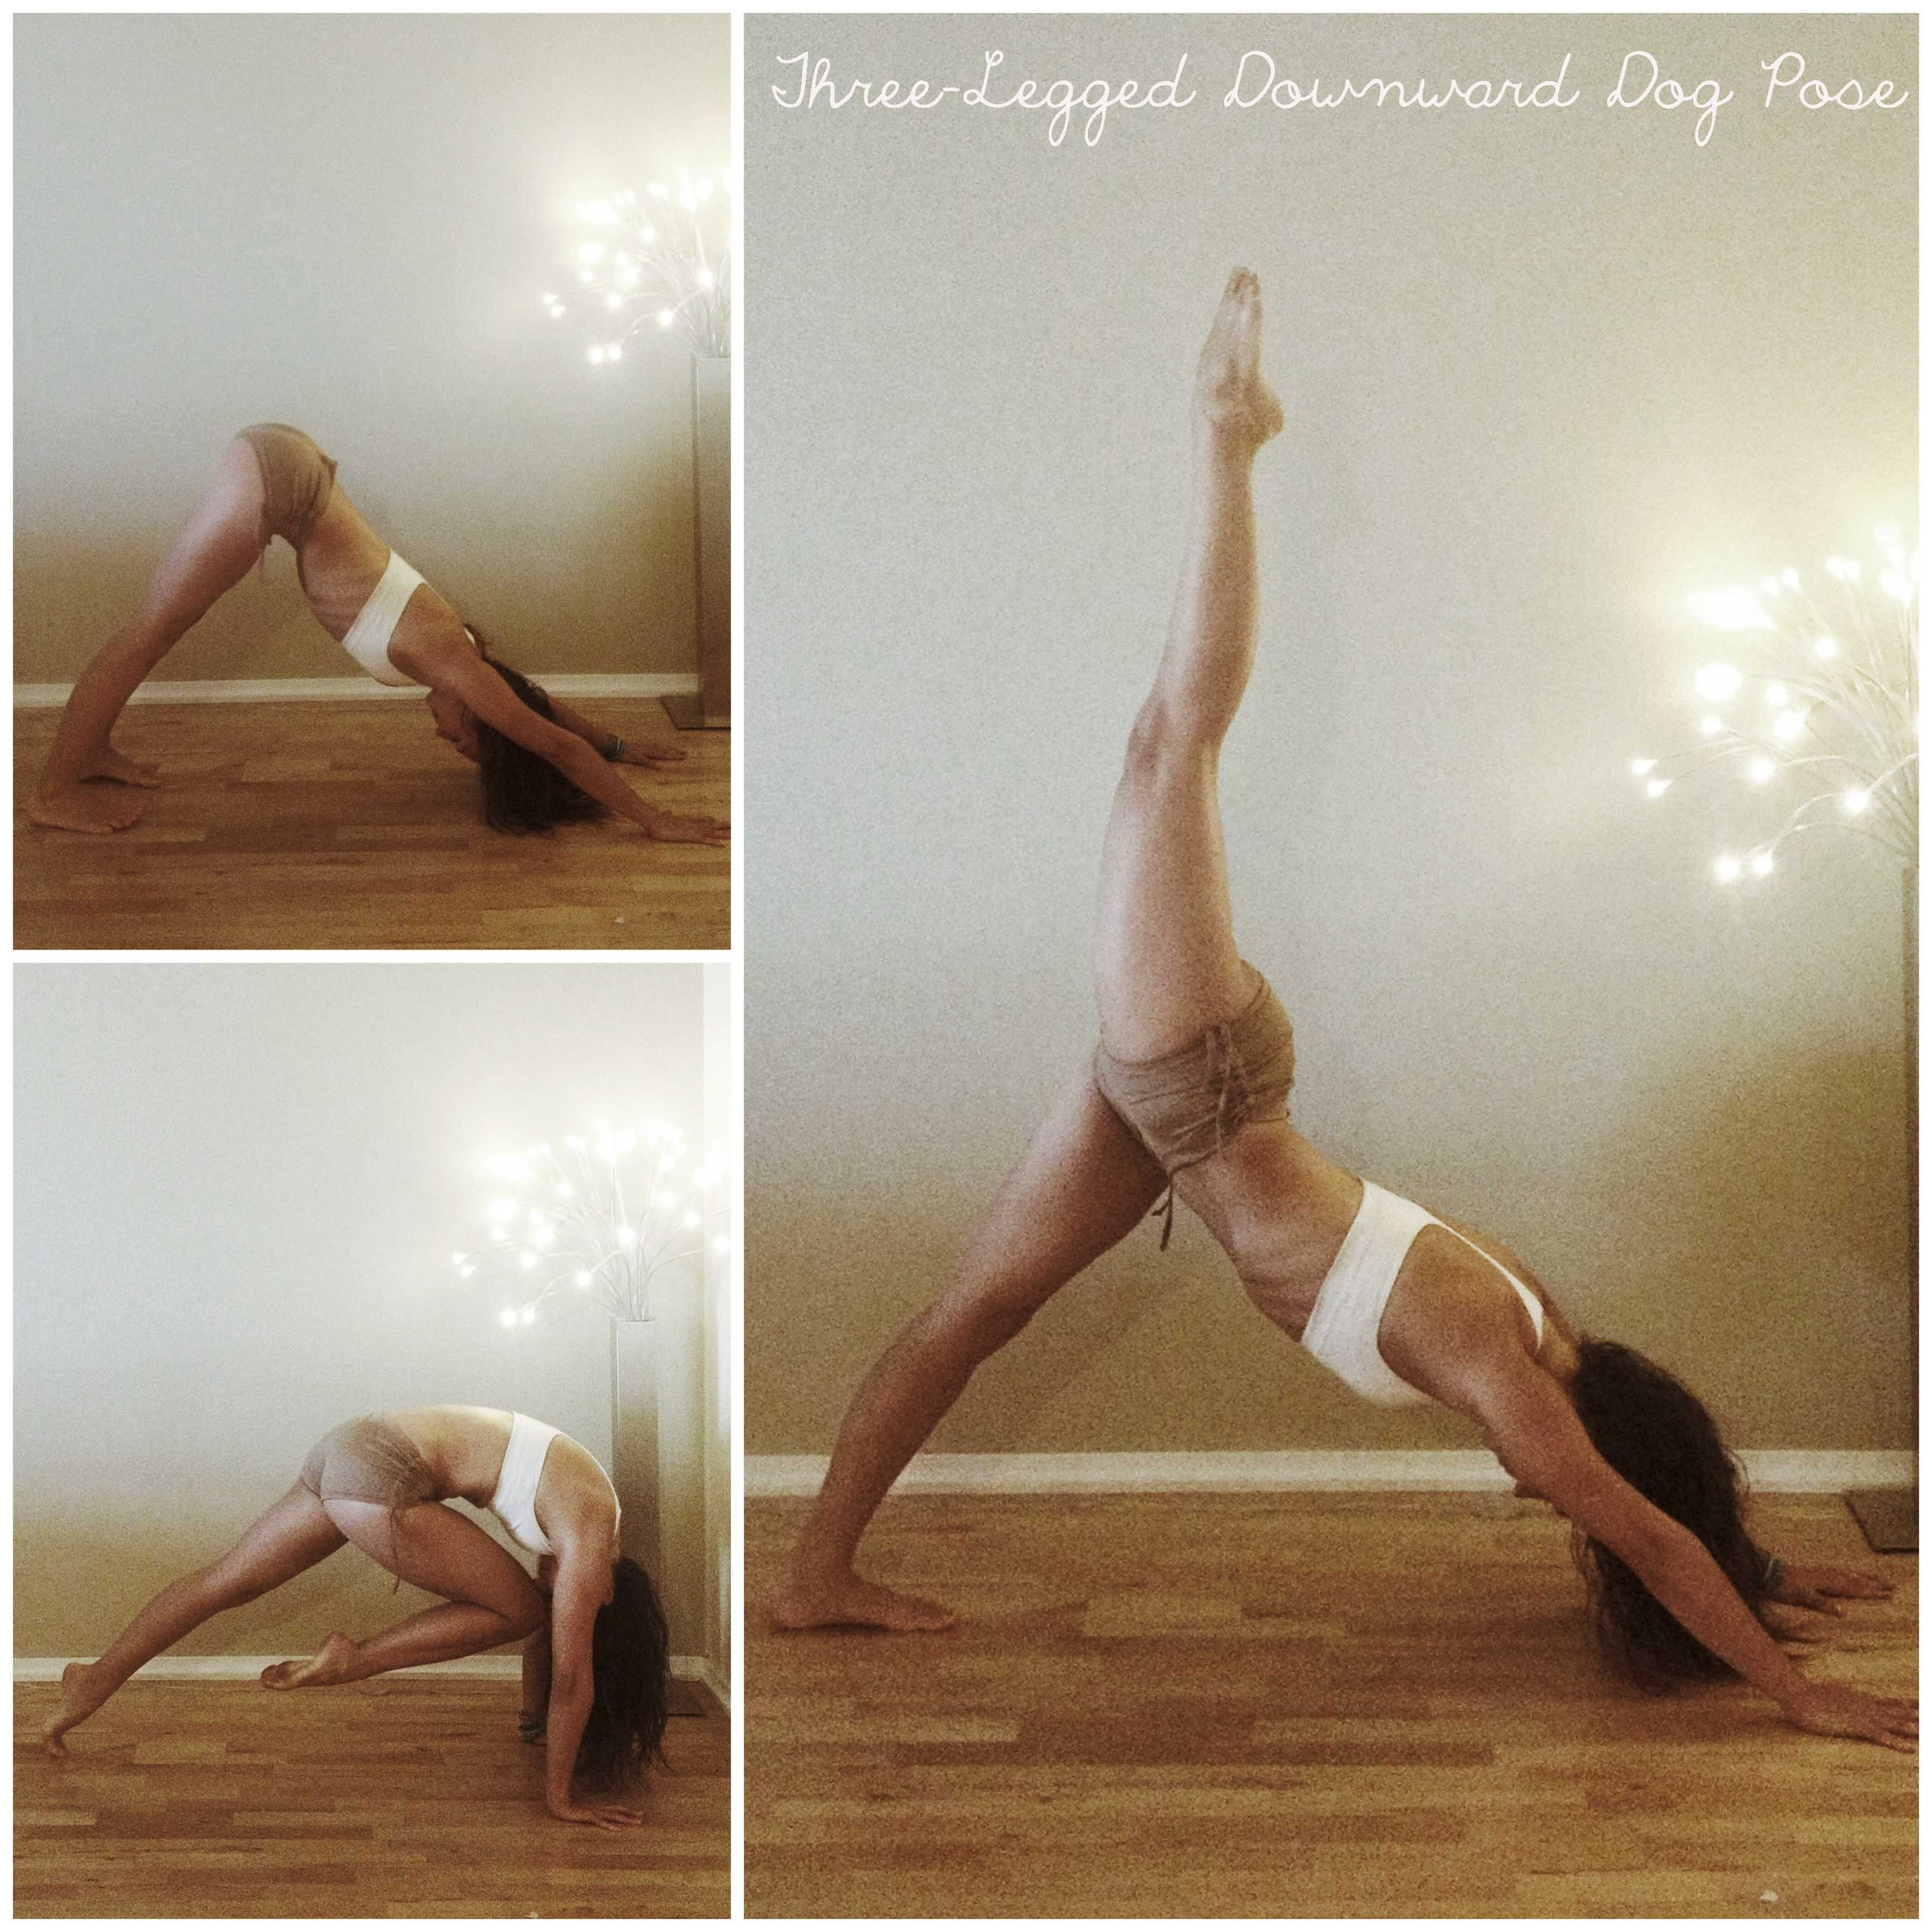 How To: Three-Legged downward facing dog | Yoga poses for ...